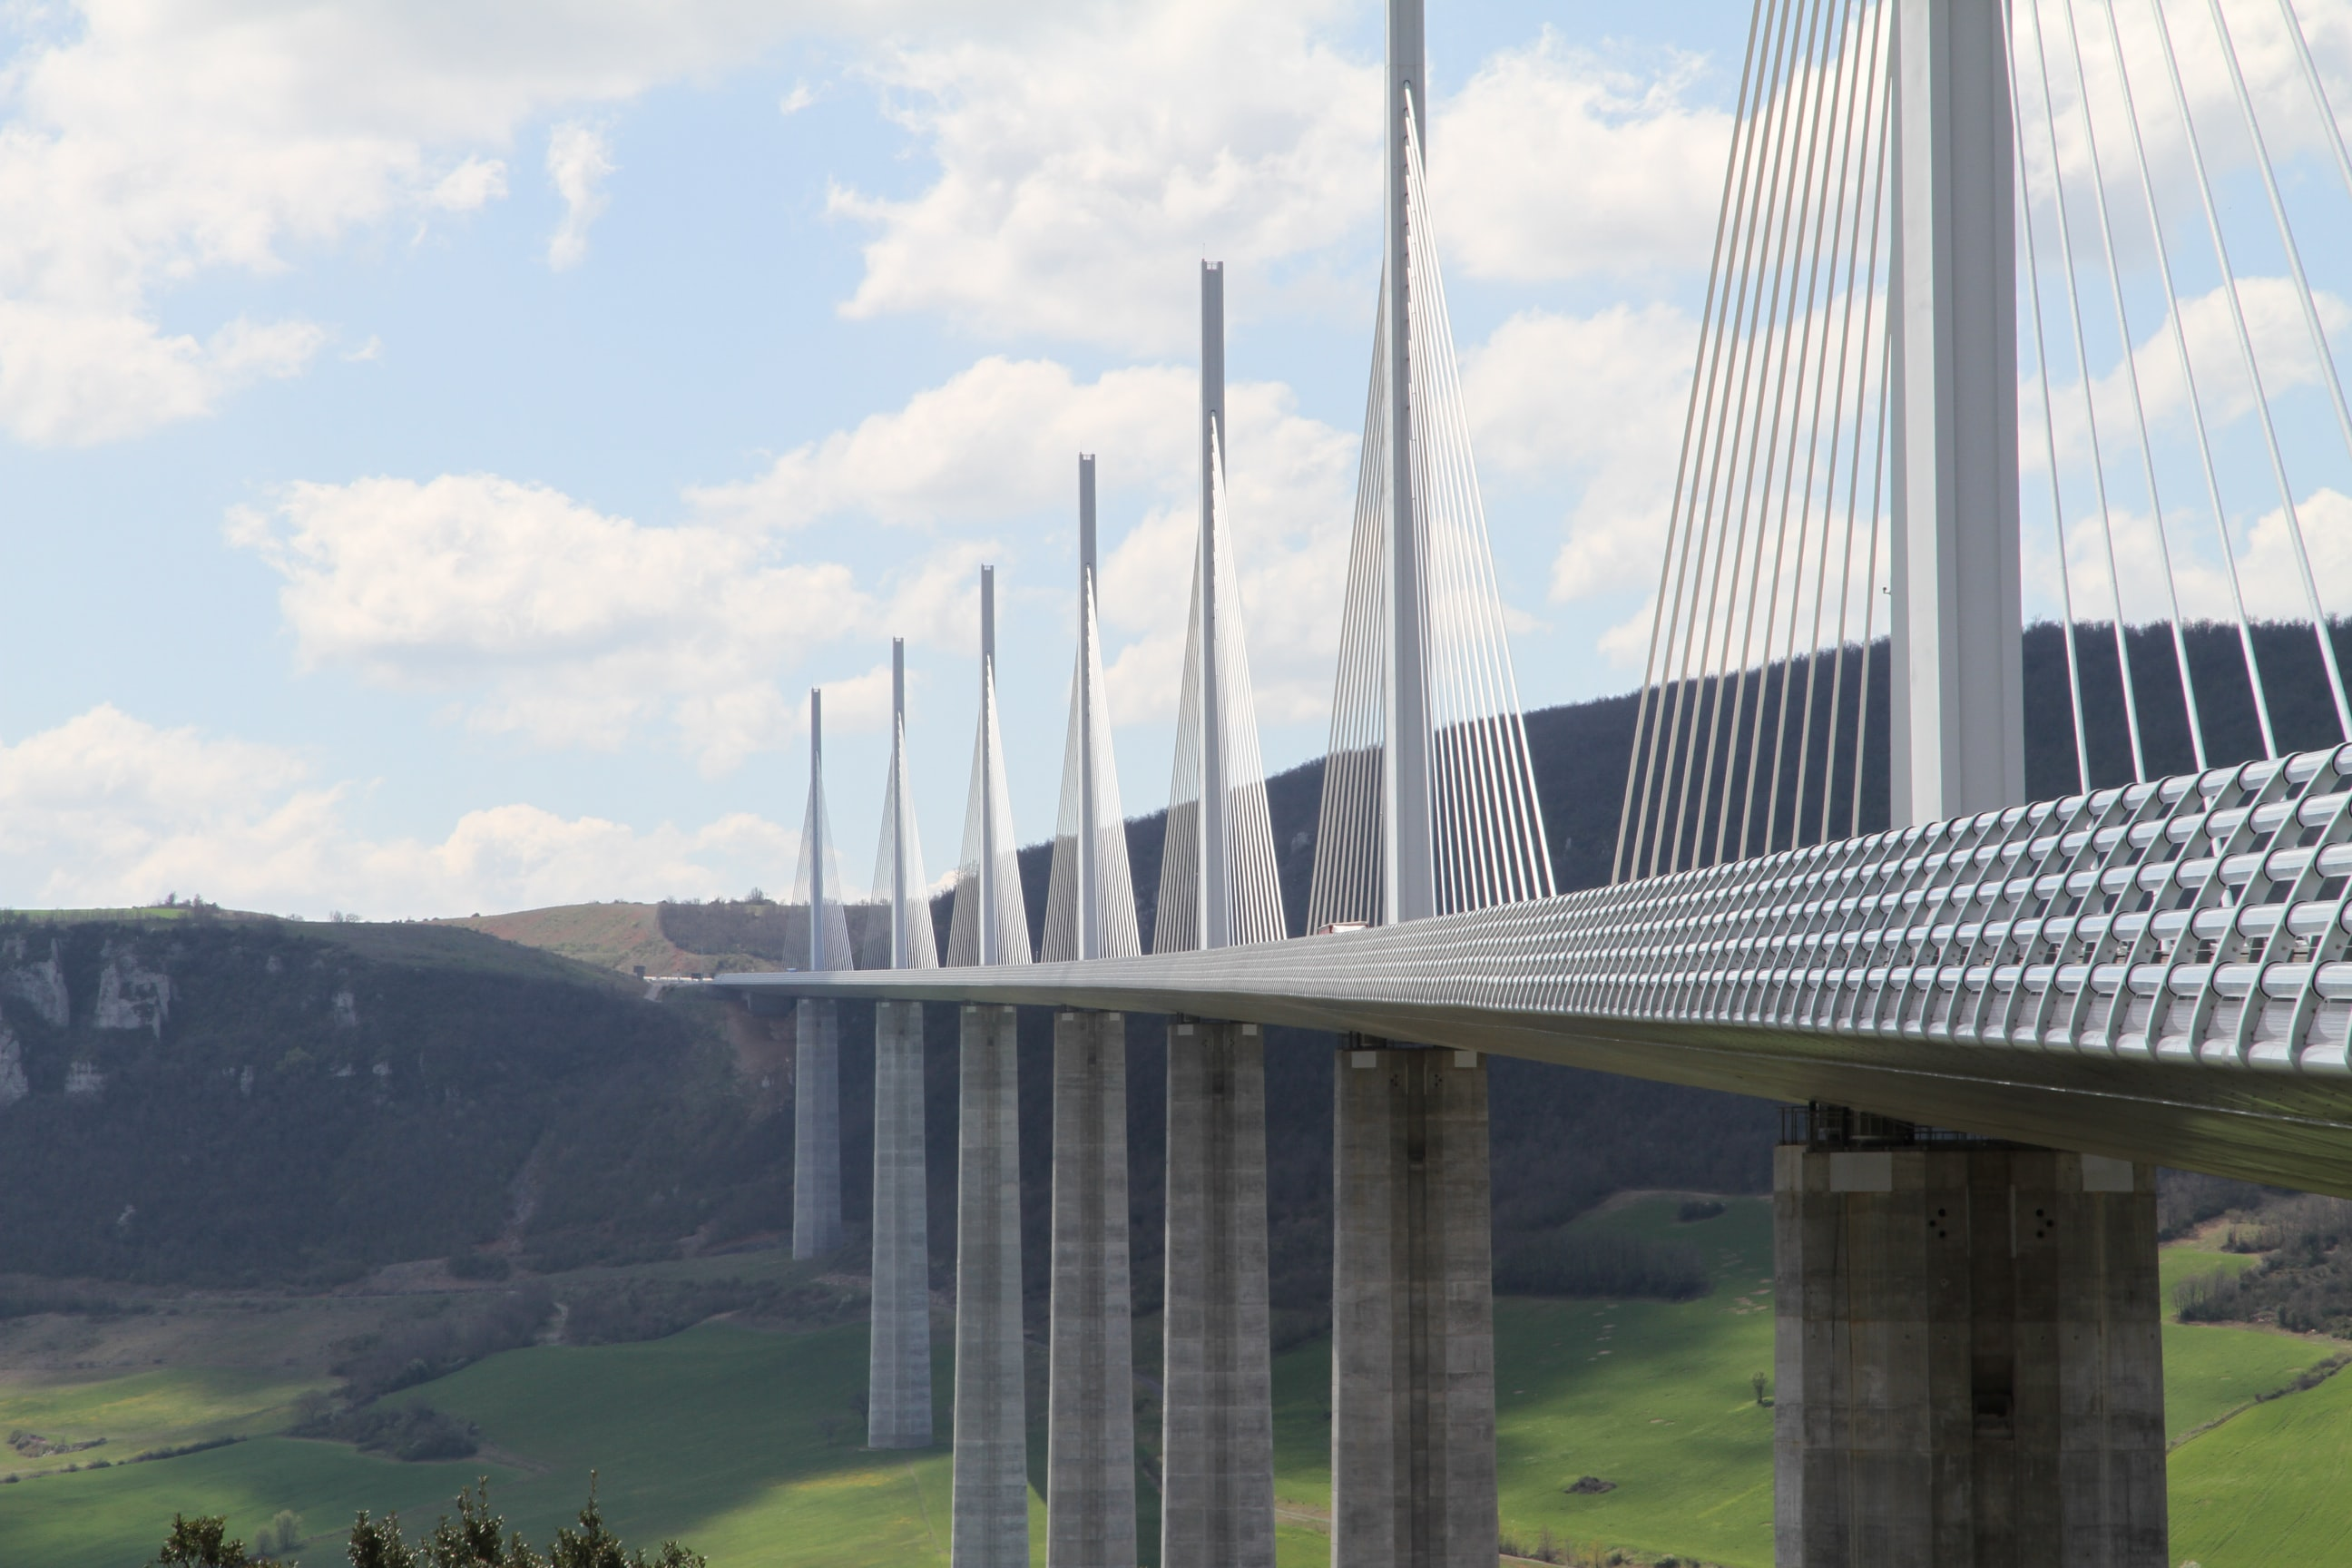 The Viaduc de Millau bridge and mountains against a blue sky